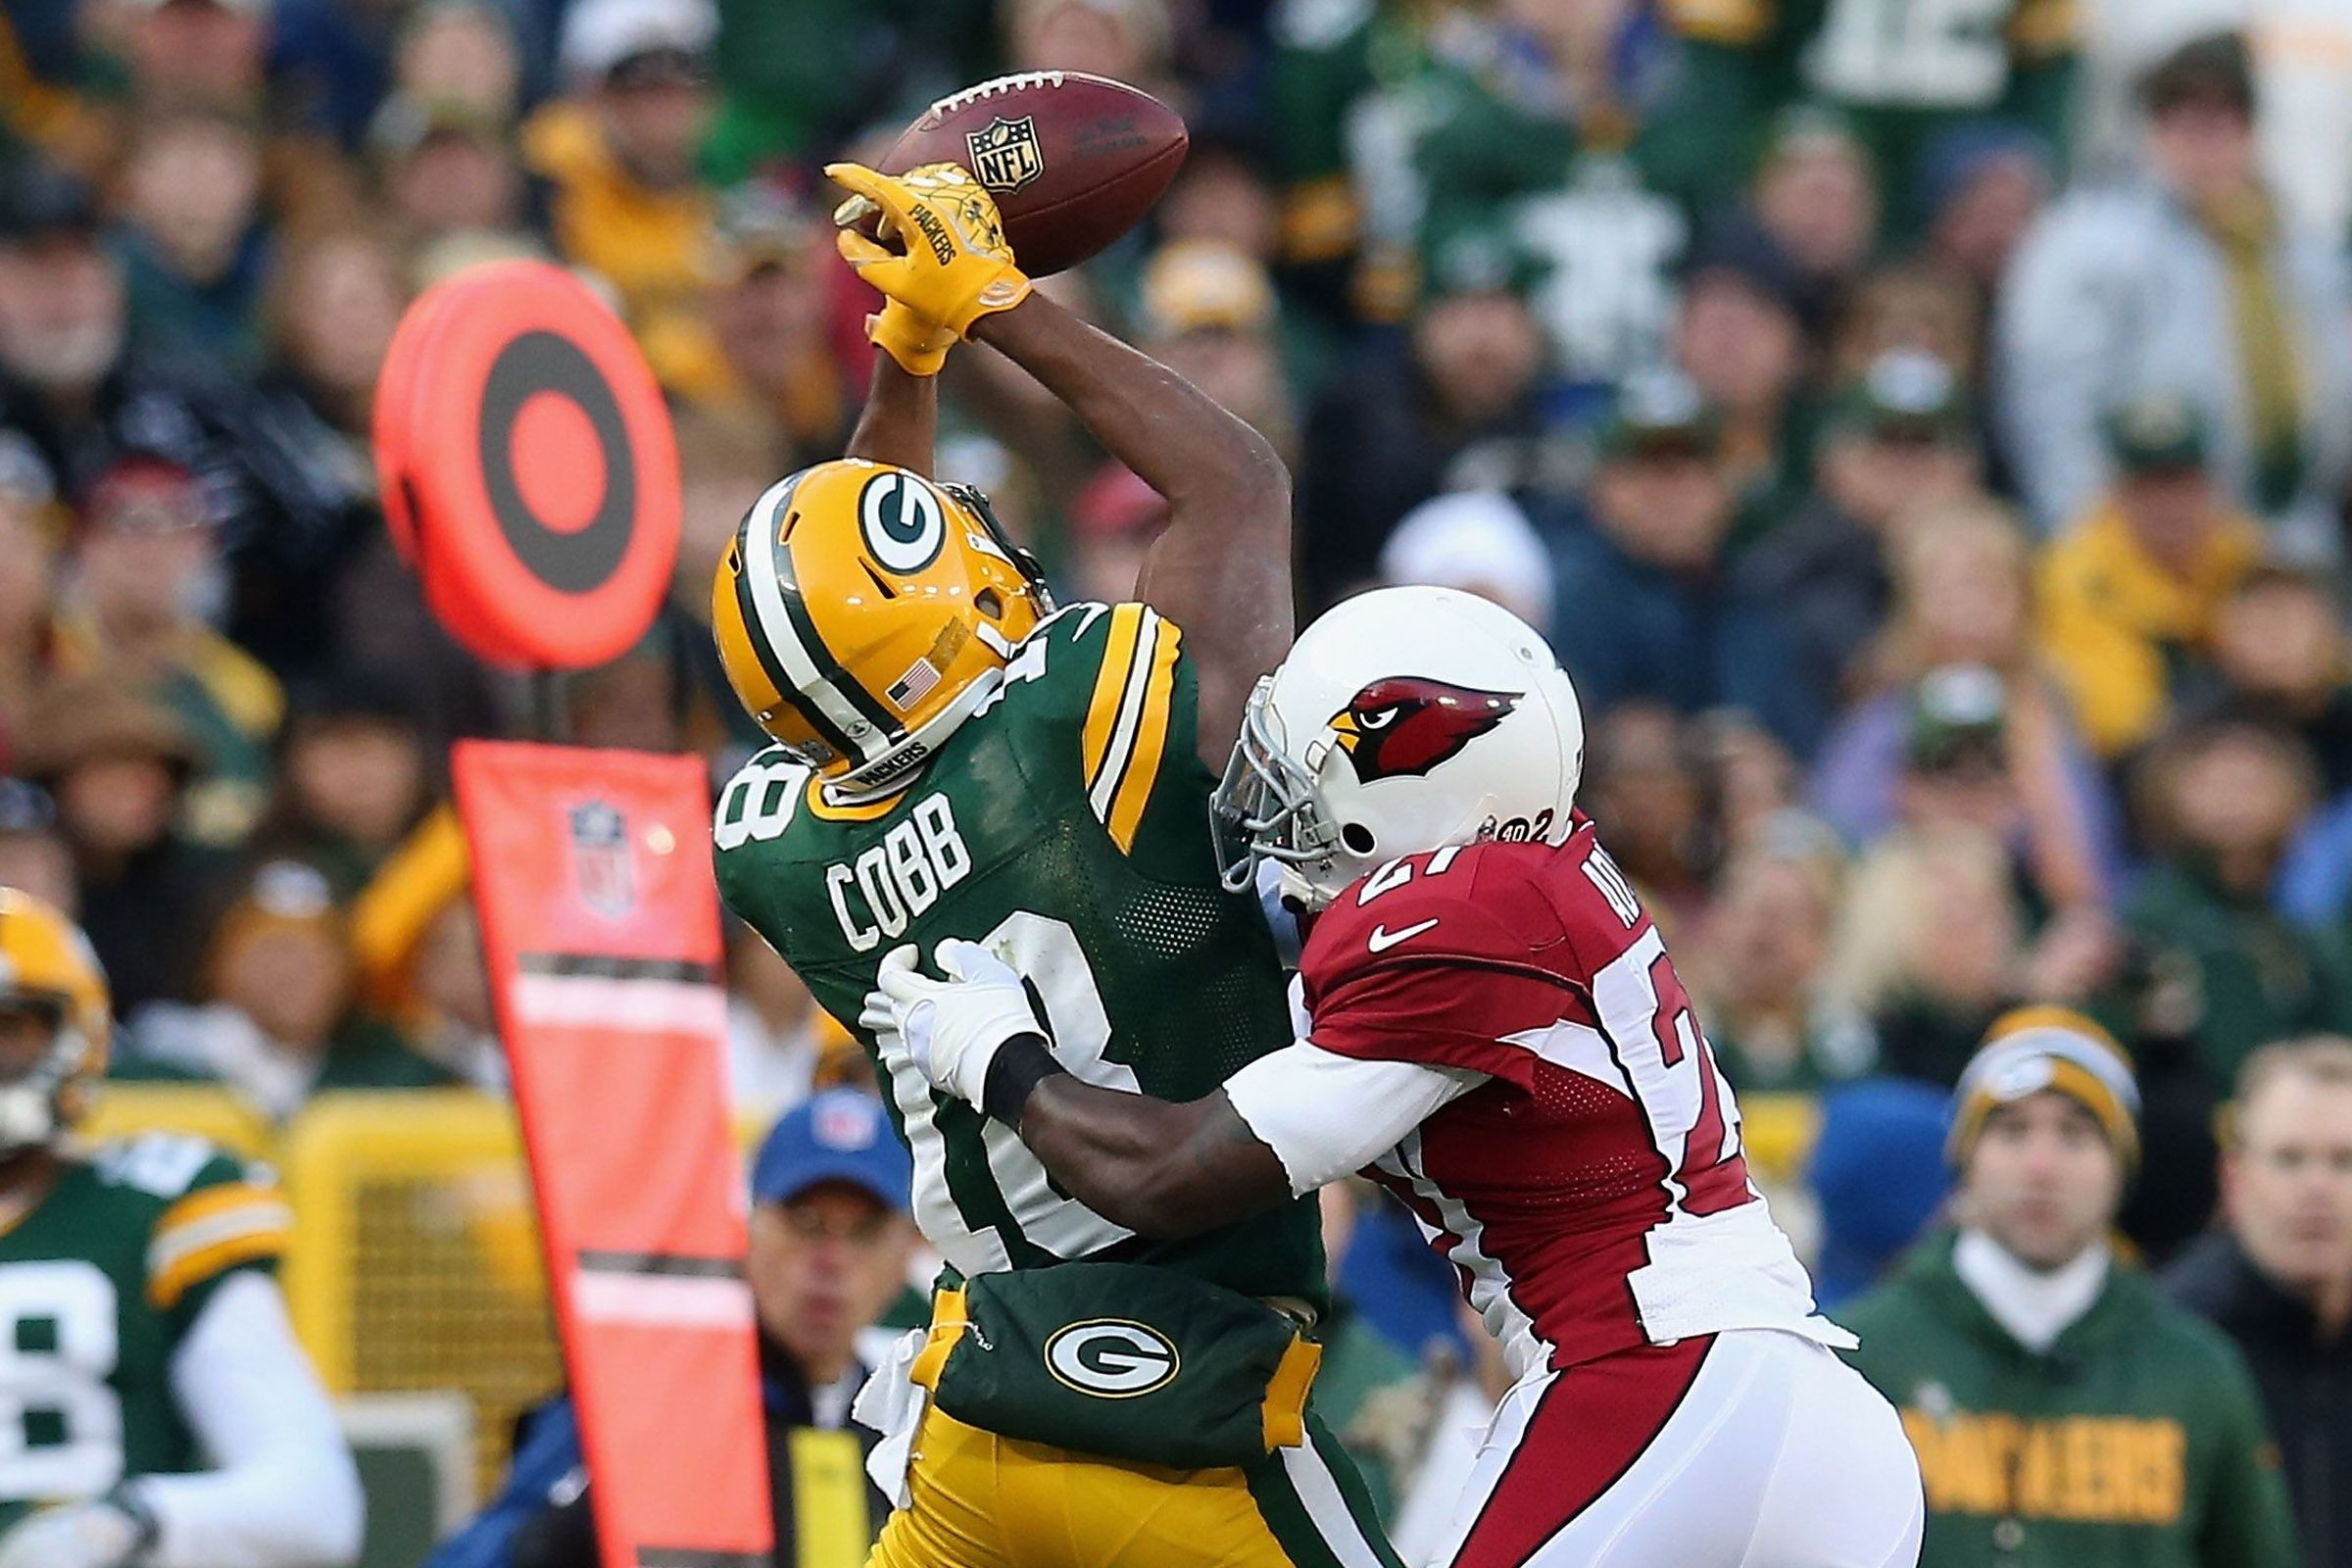 cardinals vs packers live sportsbook betting odds